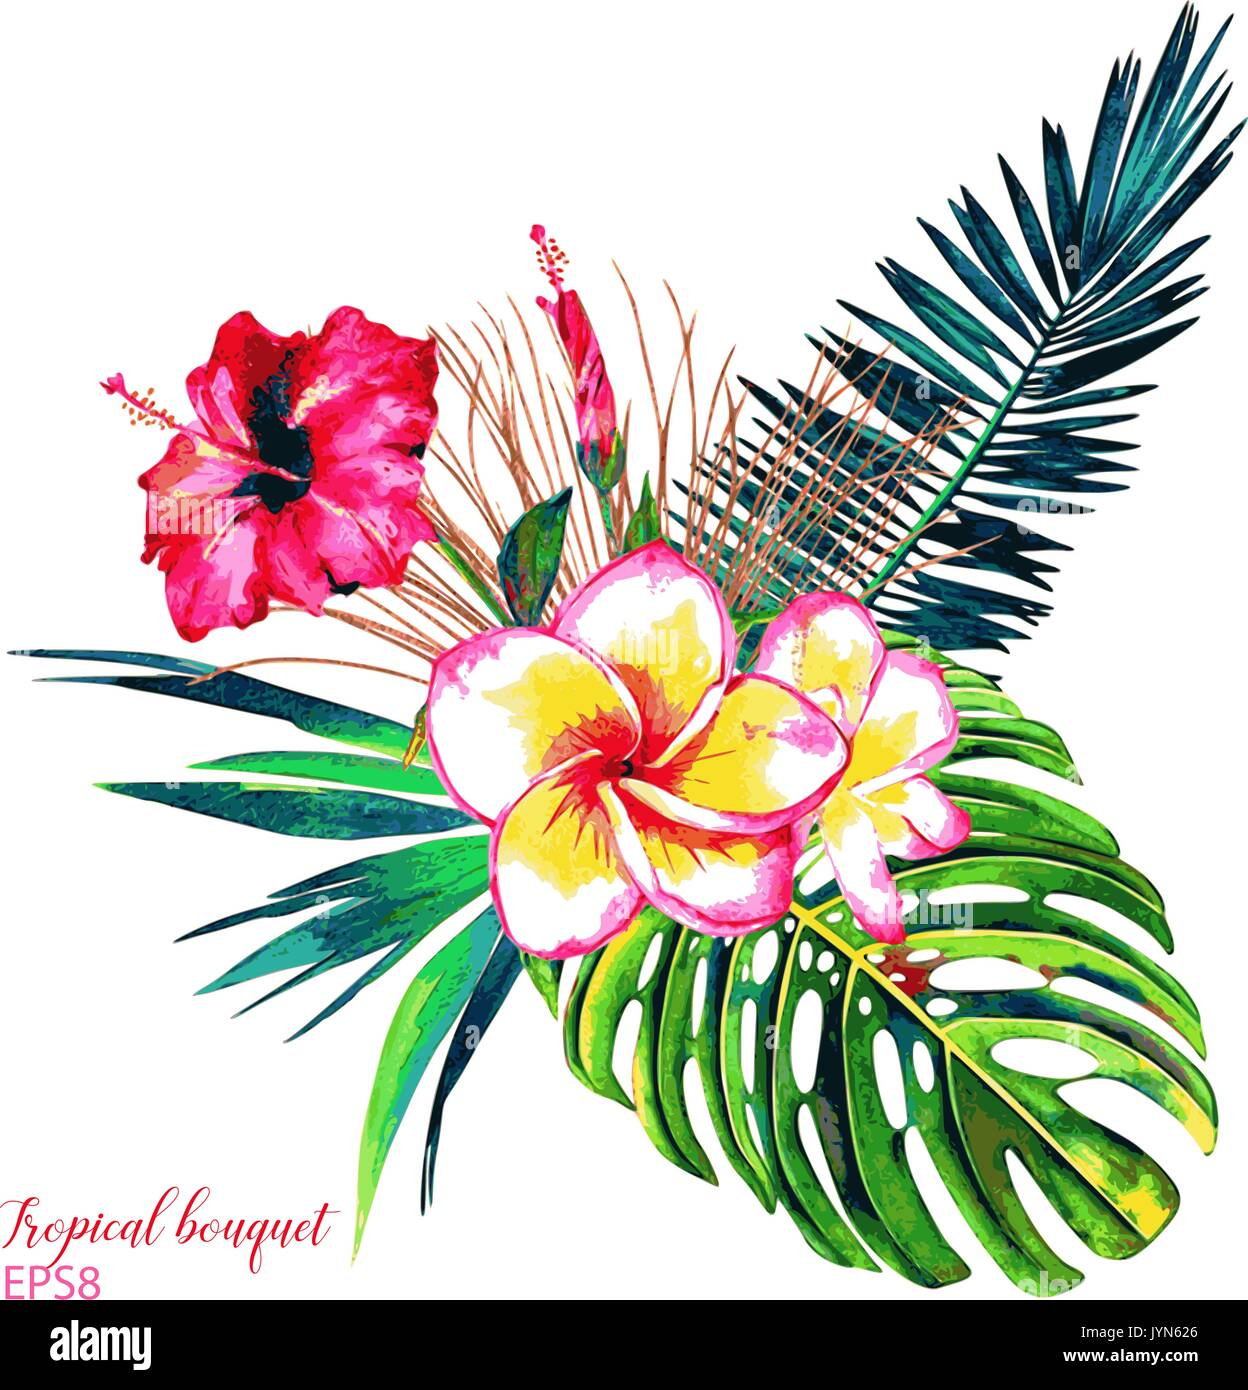 Tropical bouquet. Exotic flowers of hibiscus and plumeria, rain ...